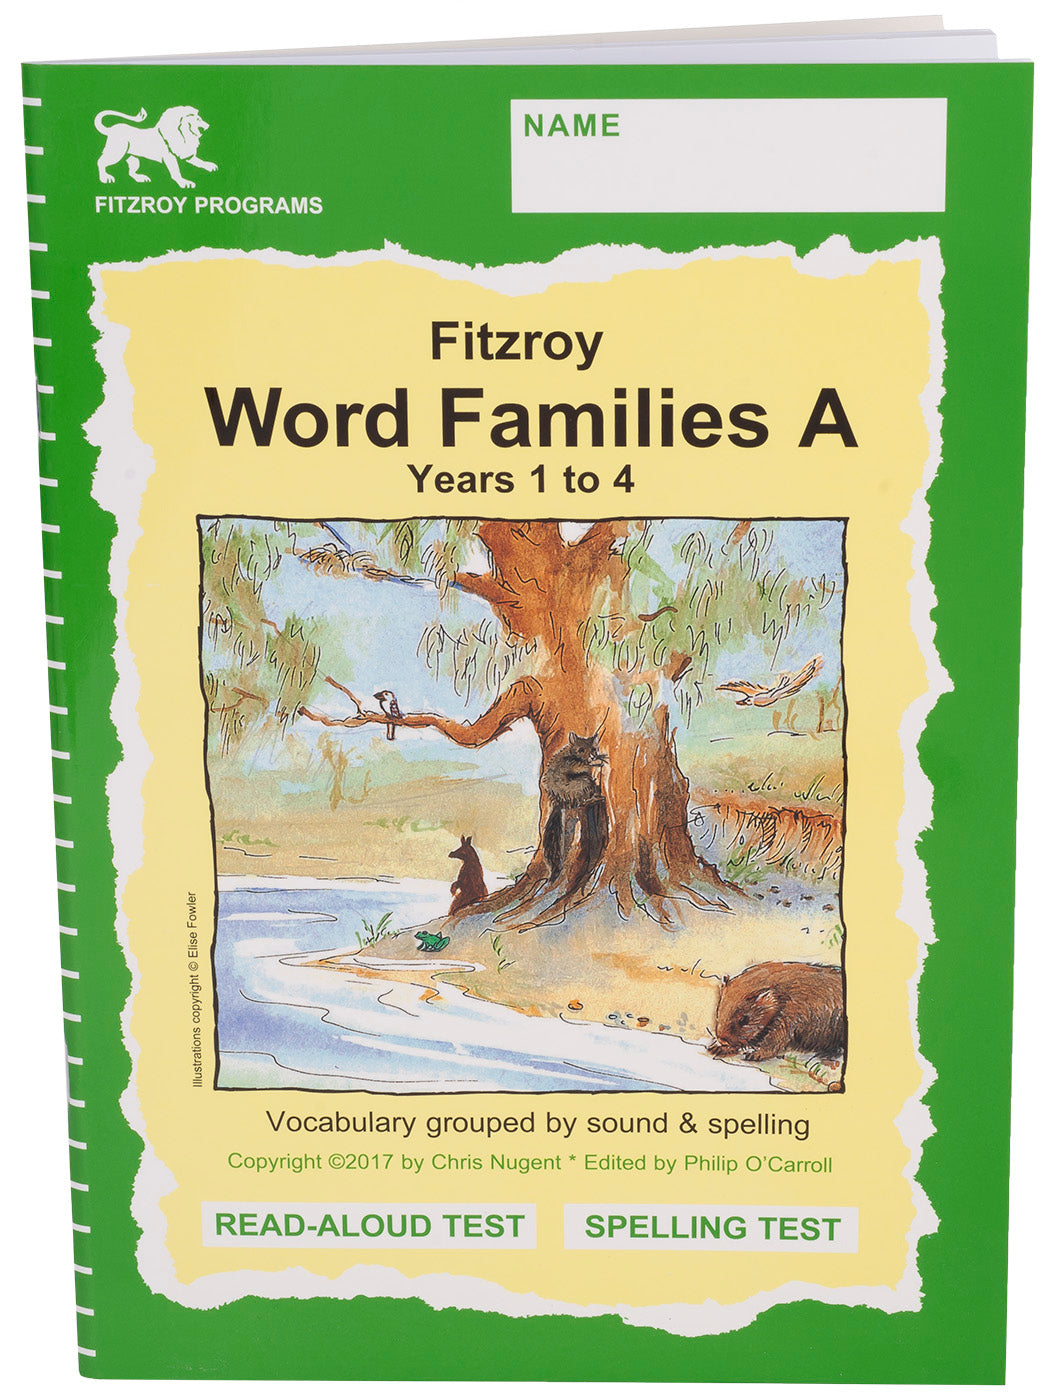 Fitzroy Word Families A